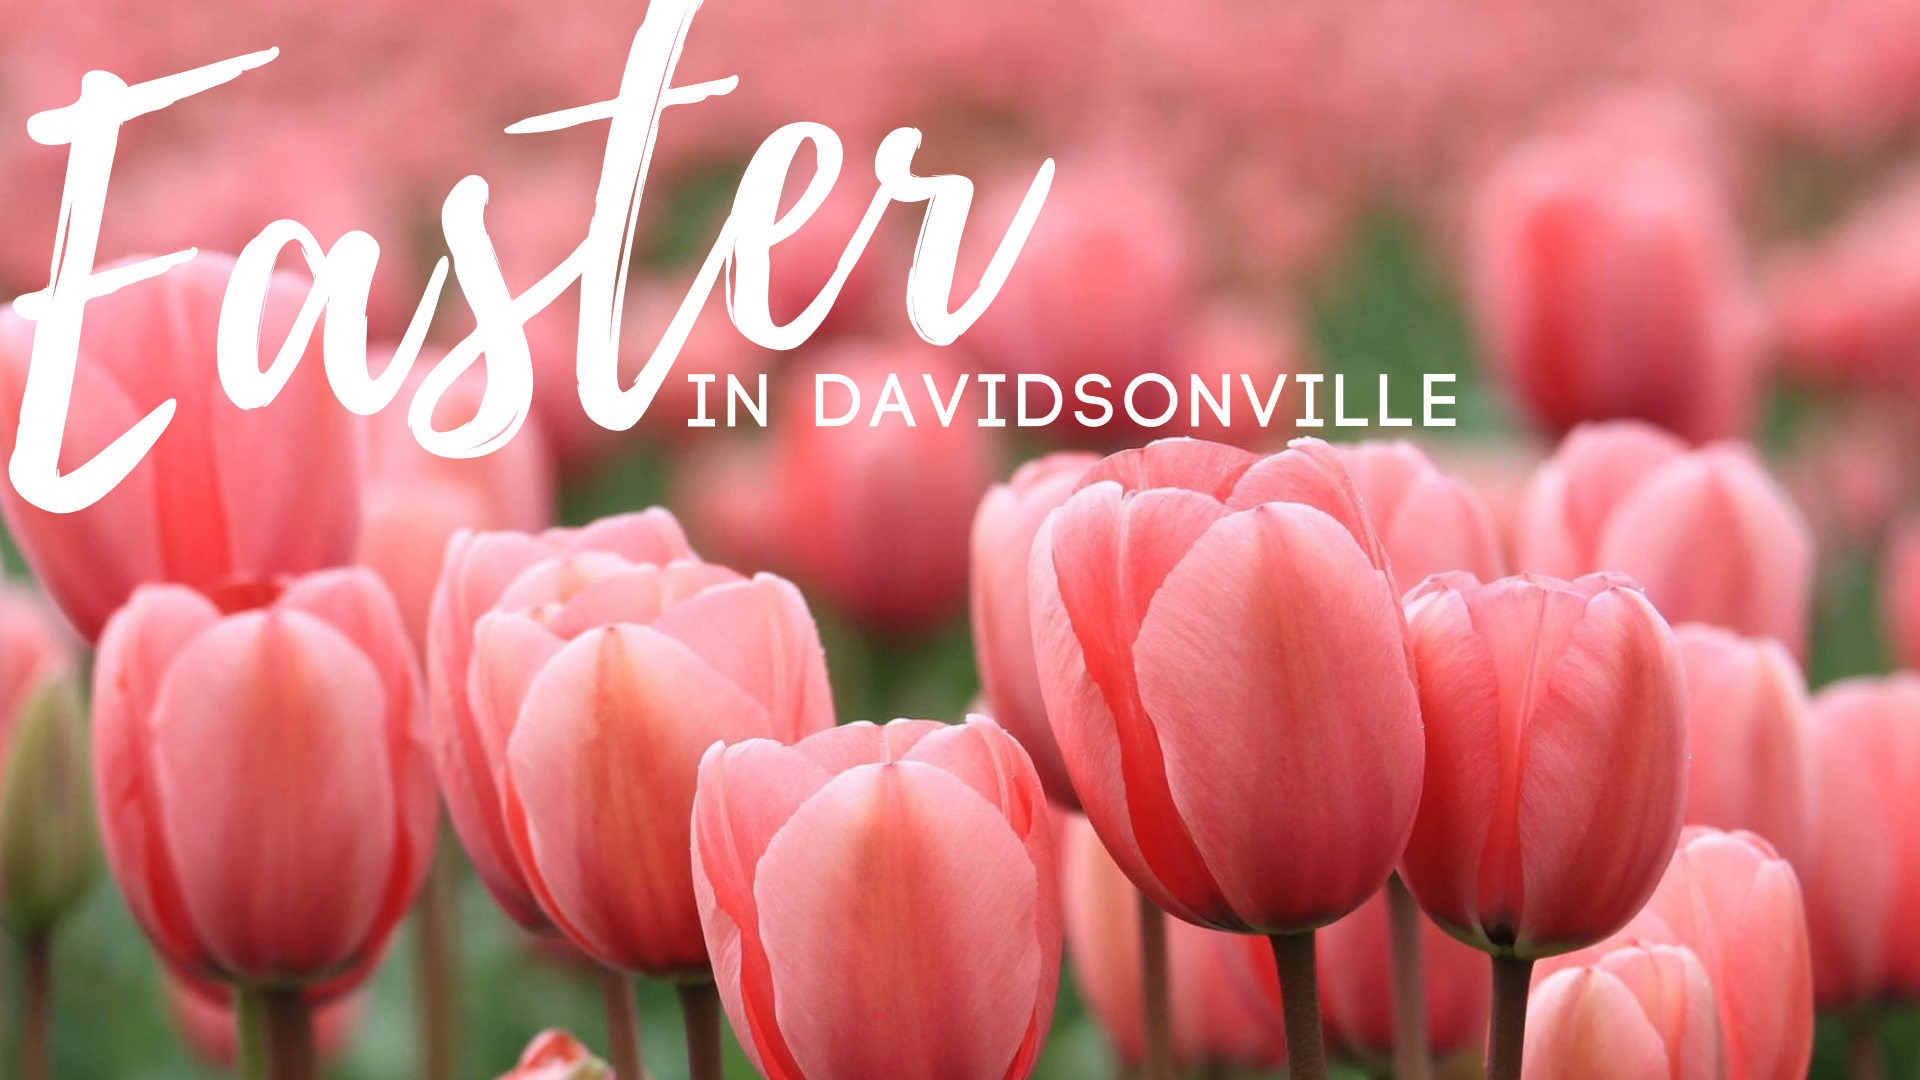 easter in davidsonville2.png